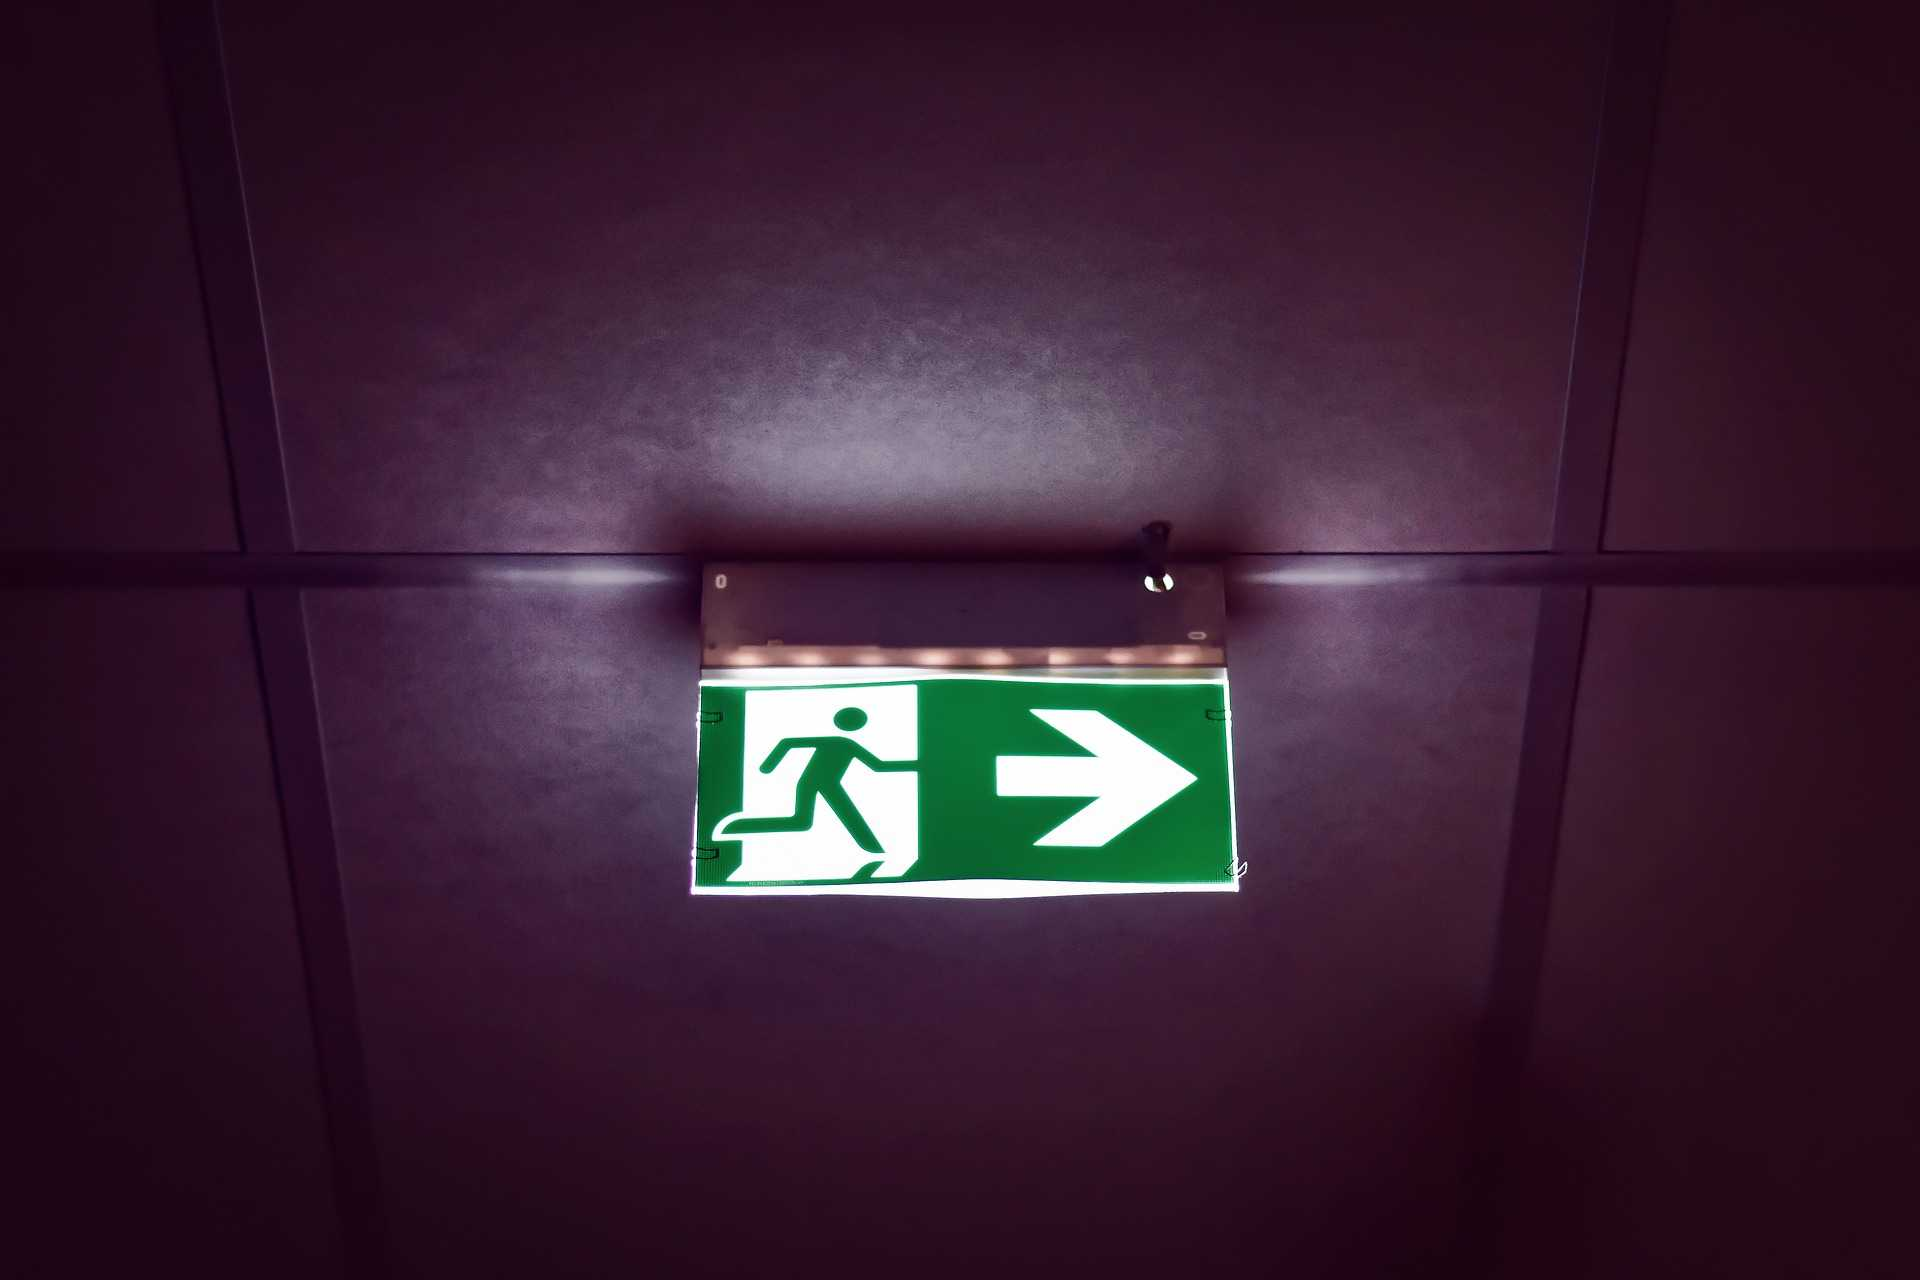 Check all fire exit signs are illuminating properly